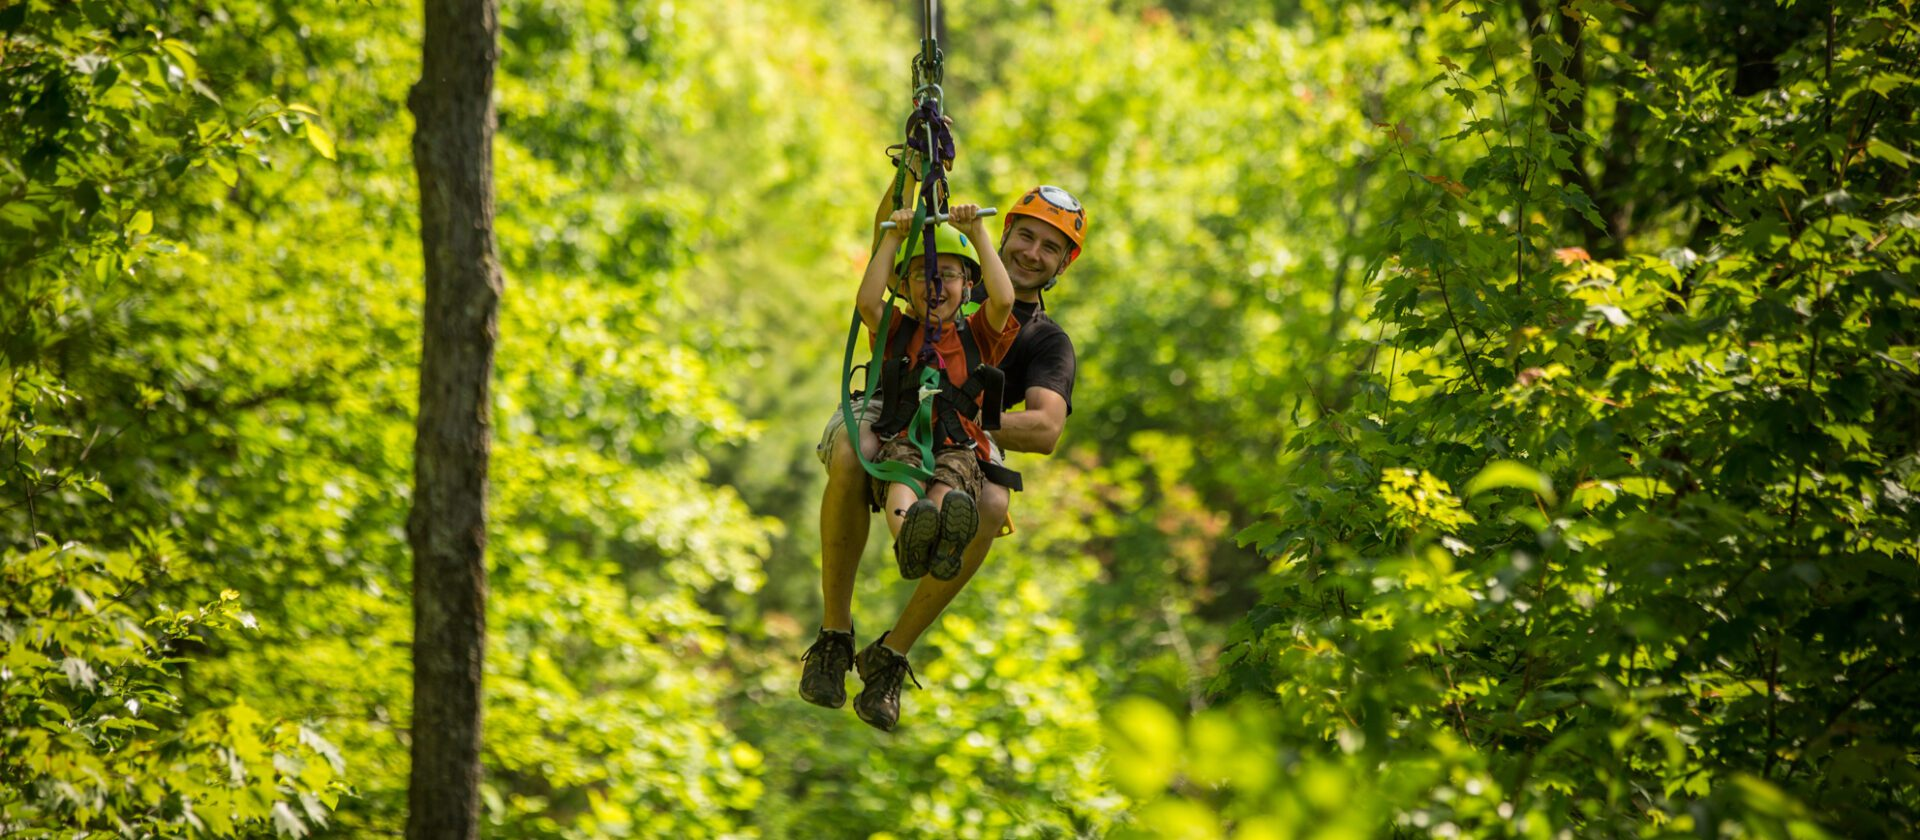 5 Reasons You Should Zipline in the Smoky Mountains on Your Family Vacation